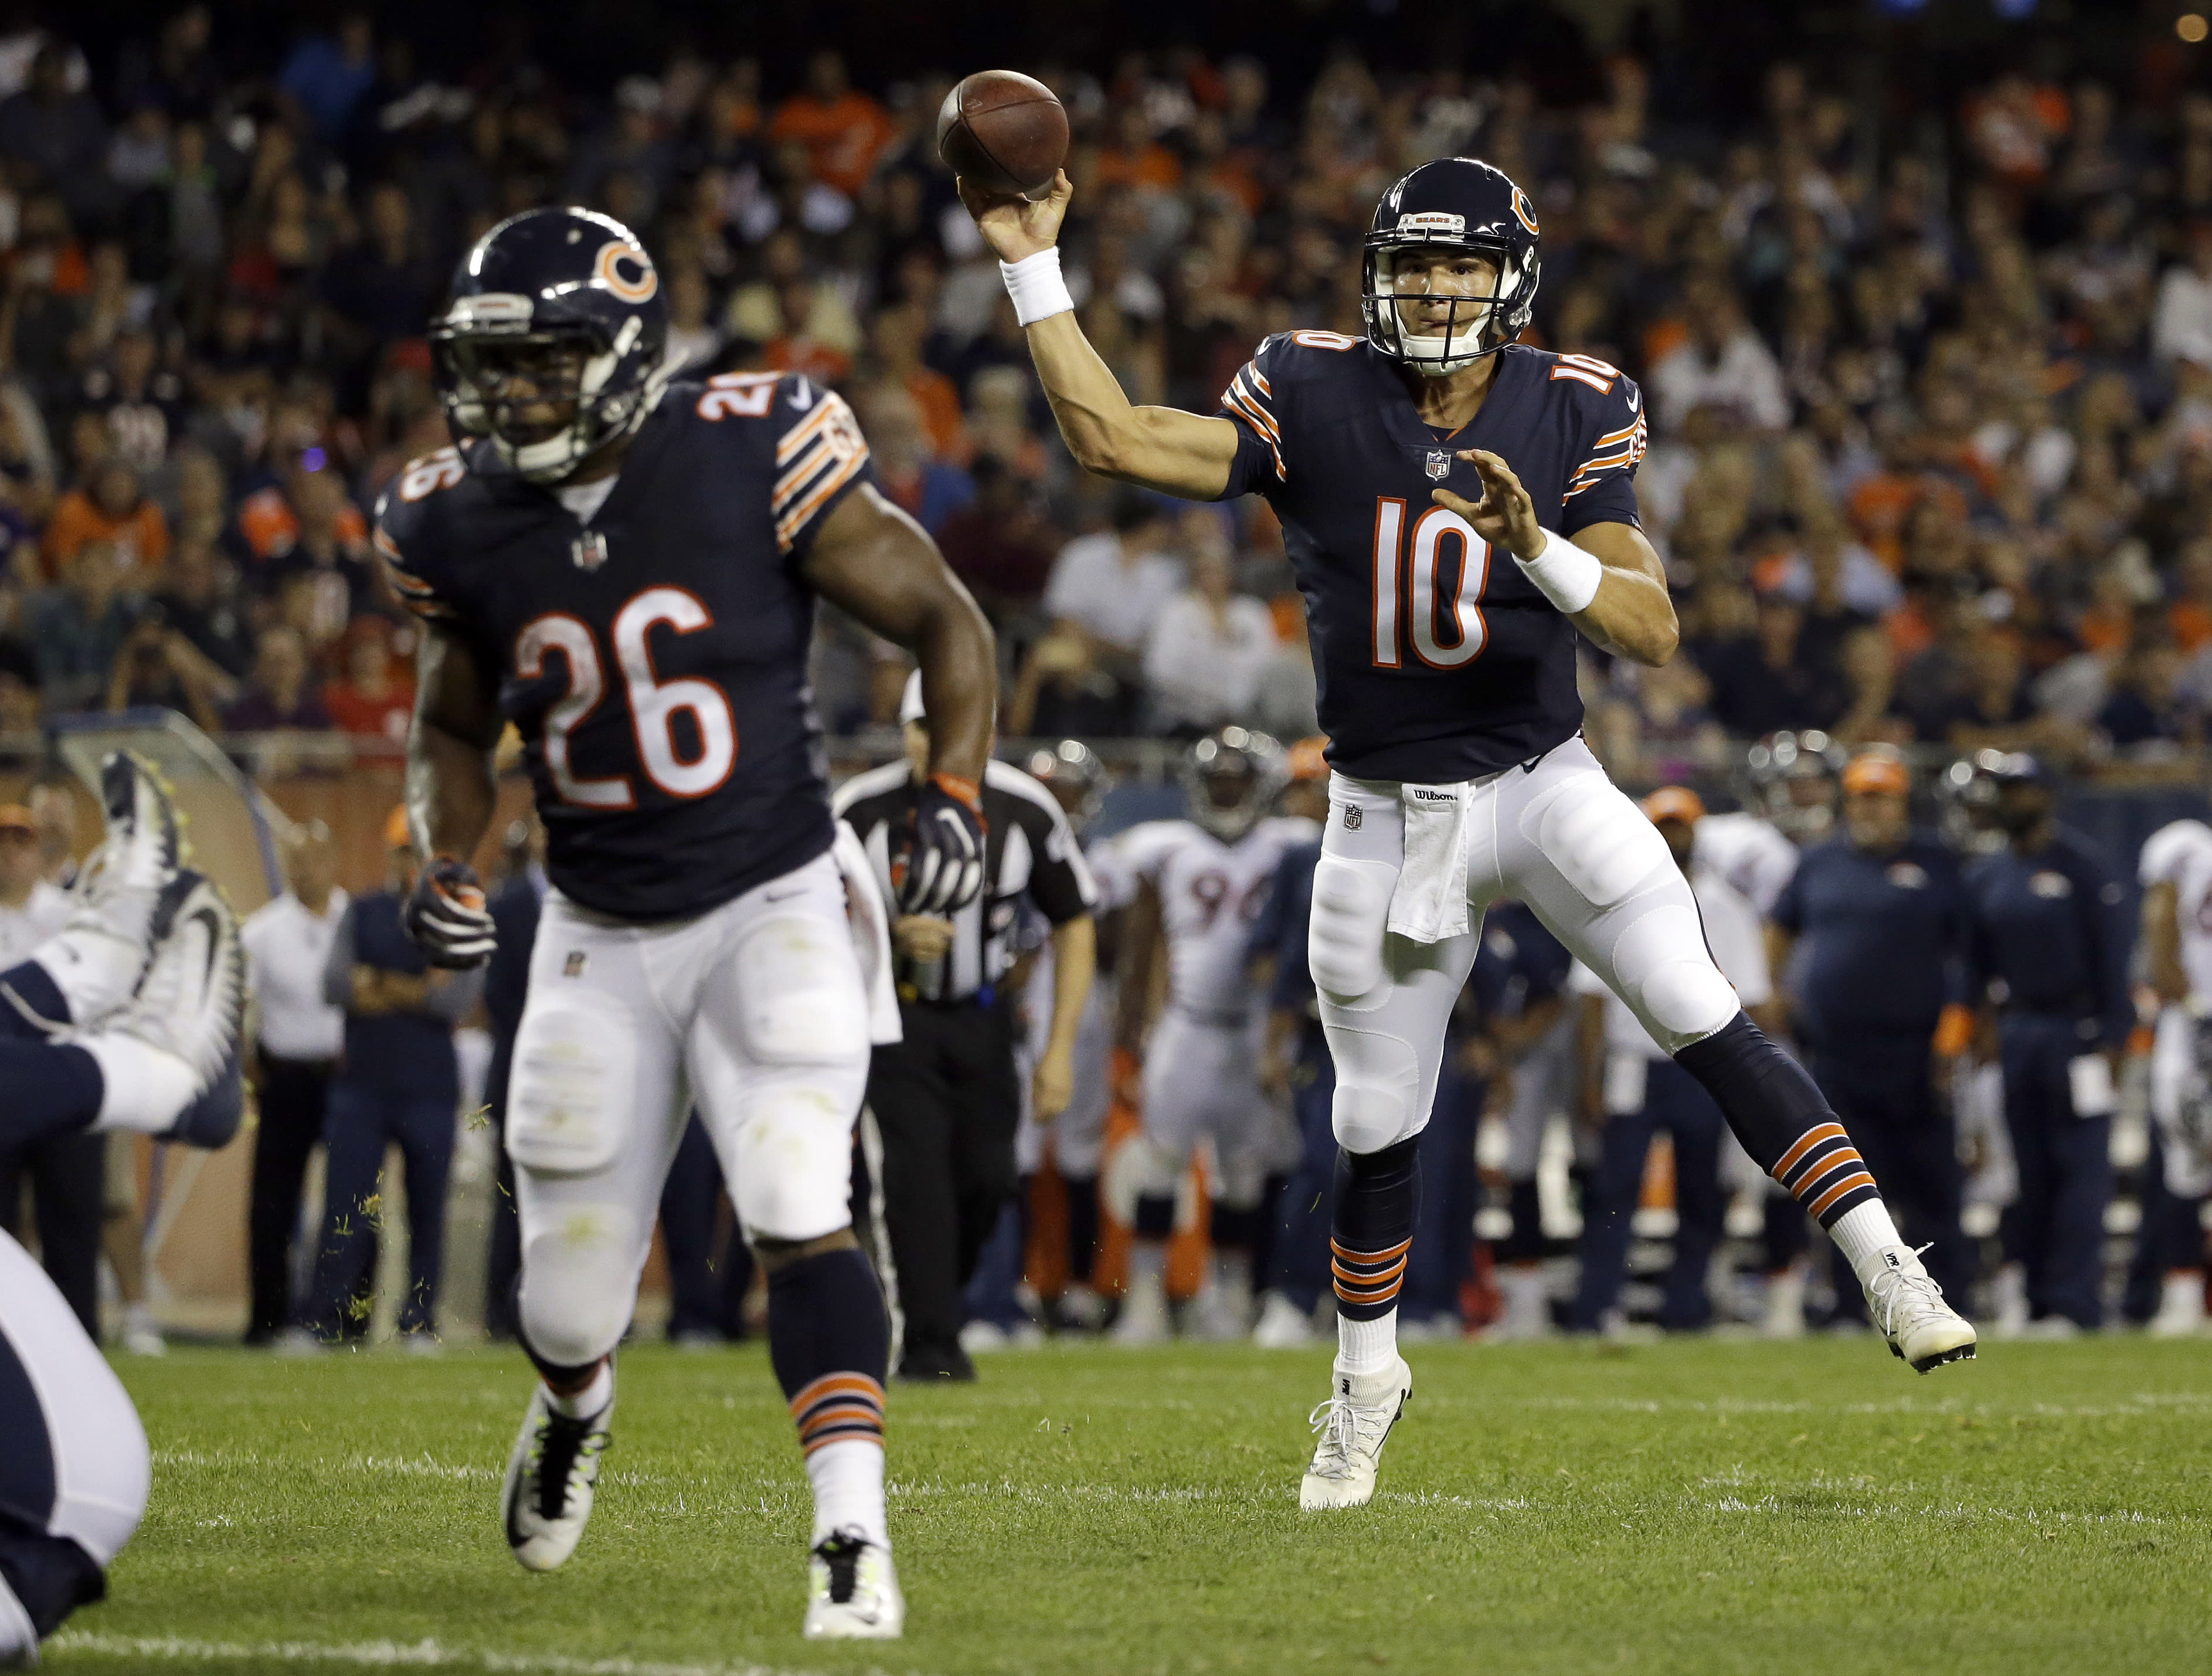 Six players to watch: What will Mitch Trubisky do for an encore?